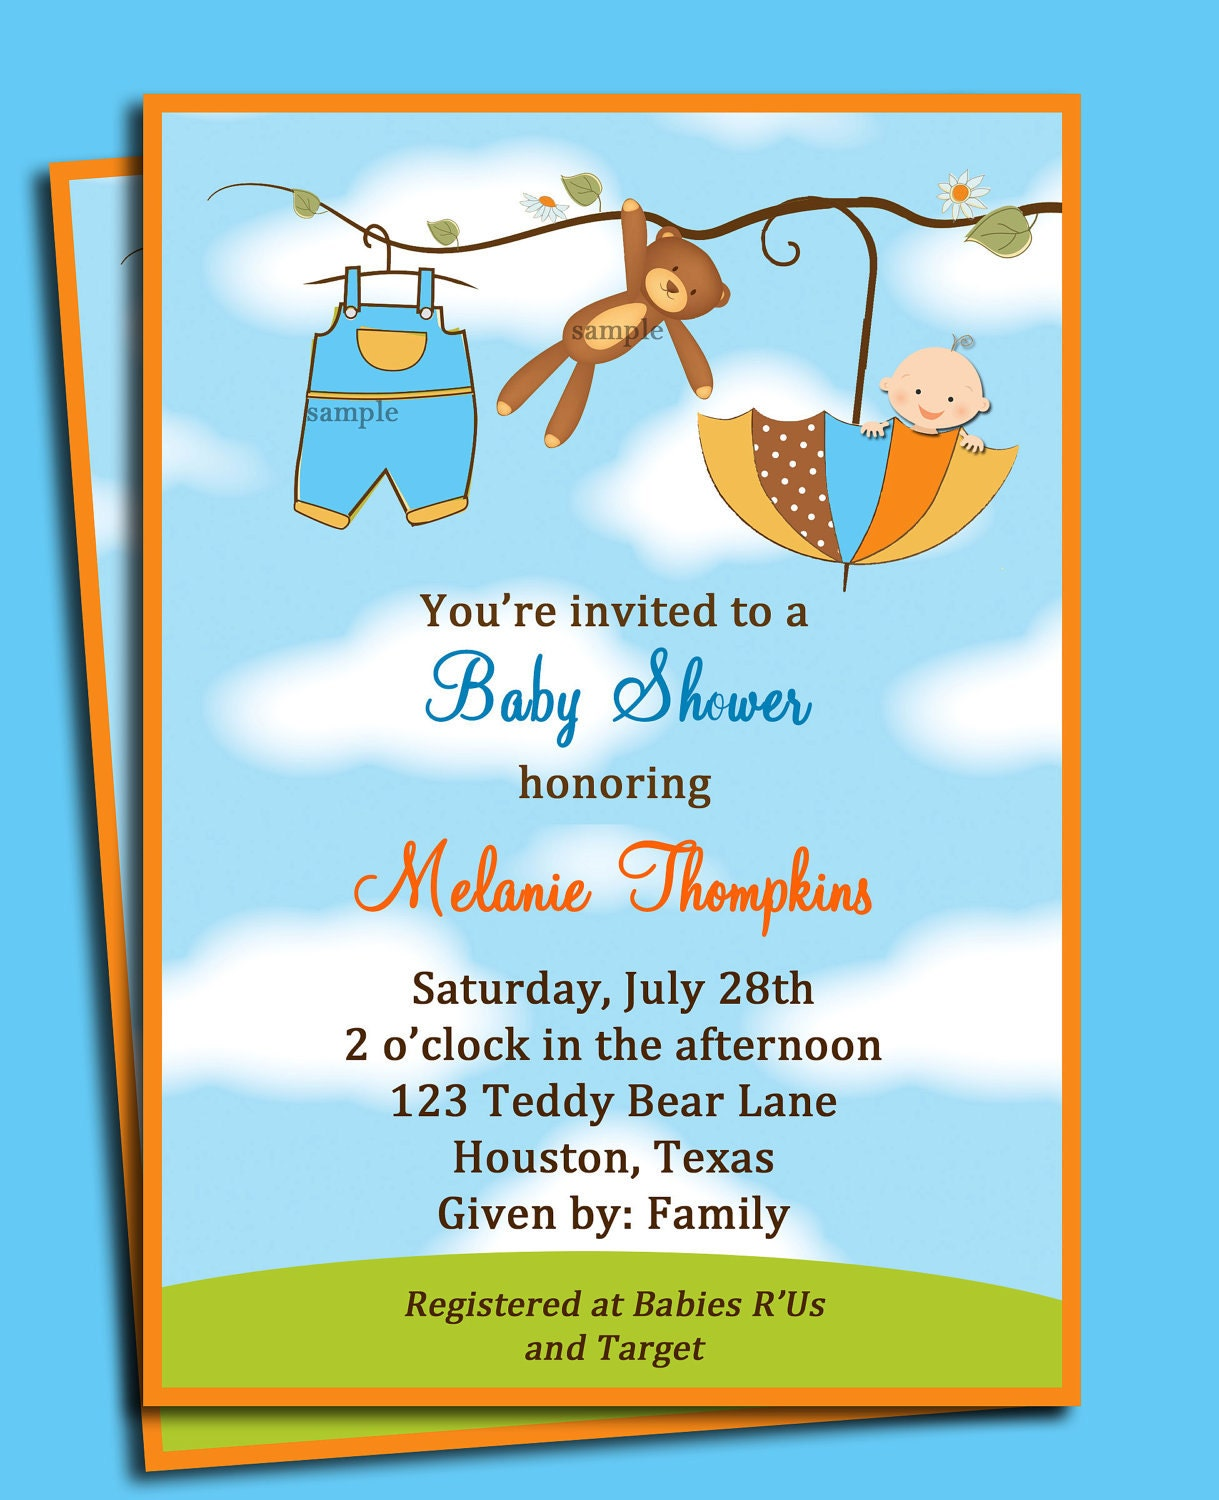 Baby Shower Invitations Wording For Boys: Teddy Bear Umbrella Boy's Baby Shower Invitation Printable